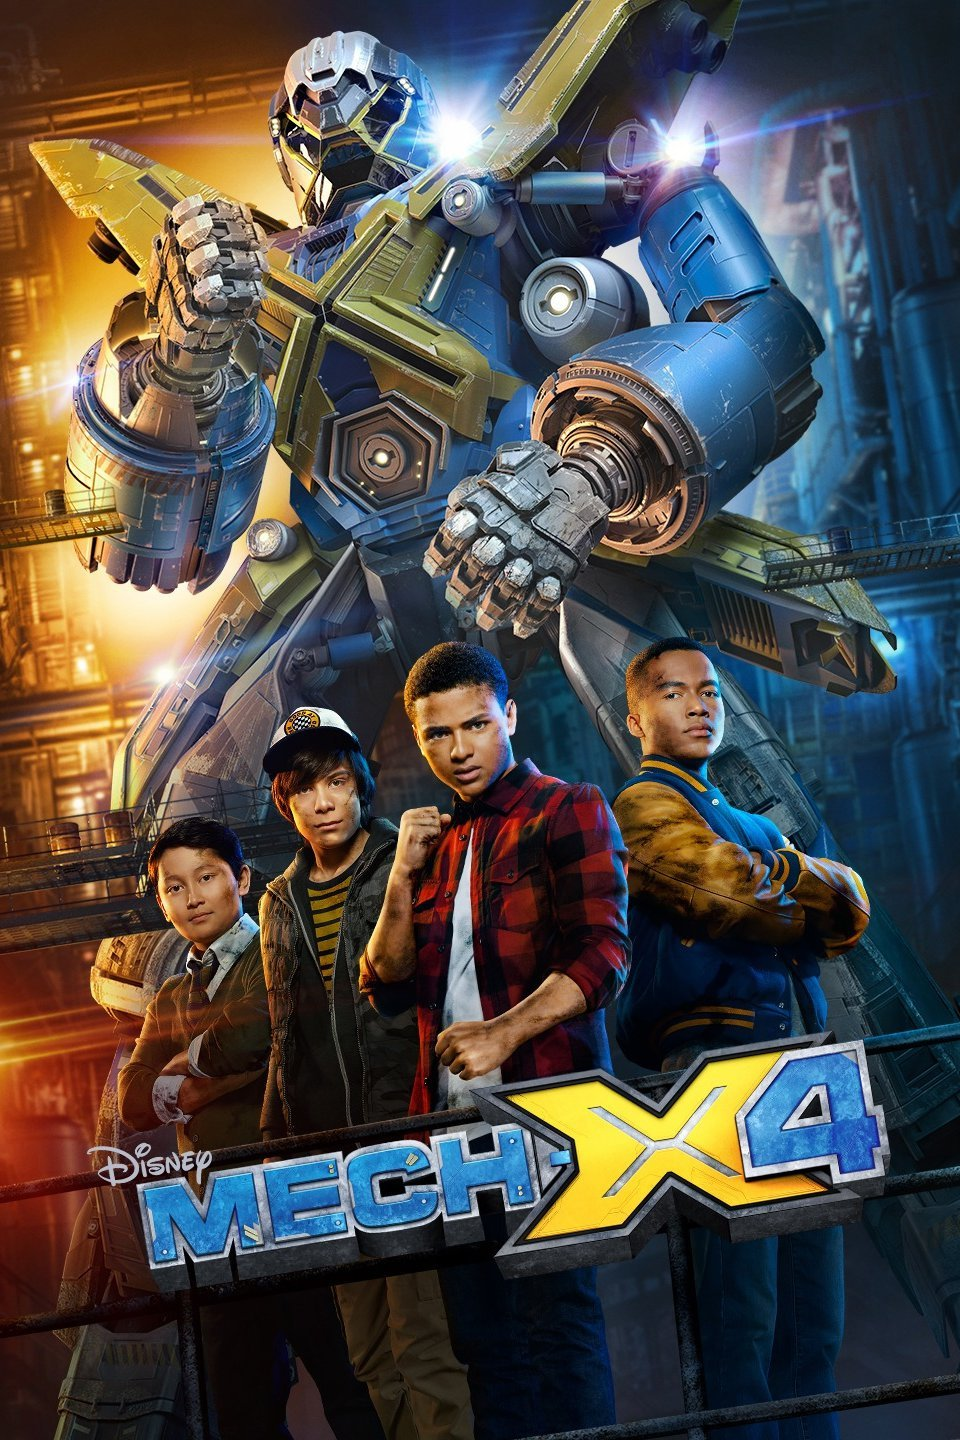 Mech-X4 Season 1 Episode 15 Download 720p WEB-DL 140MB